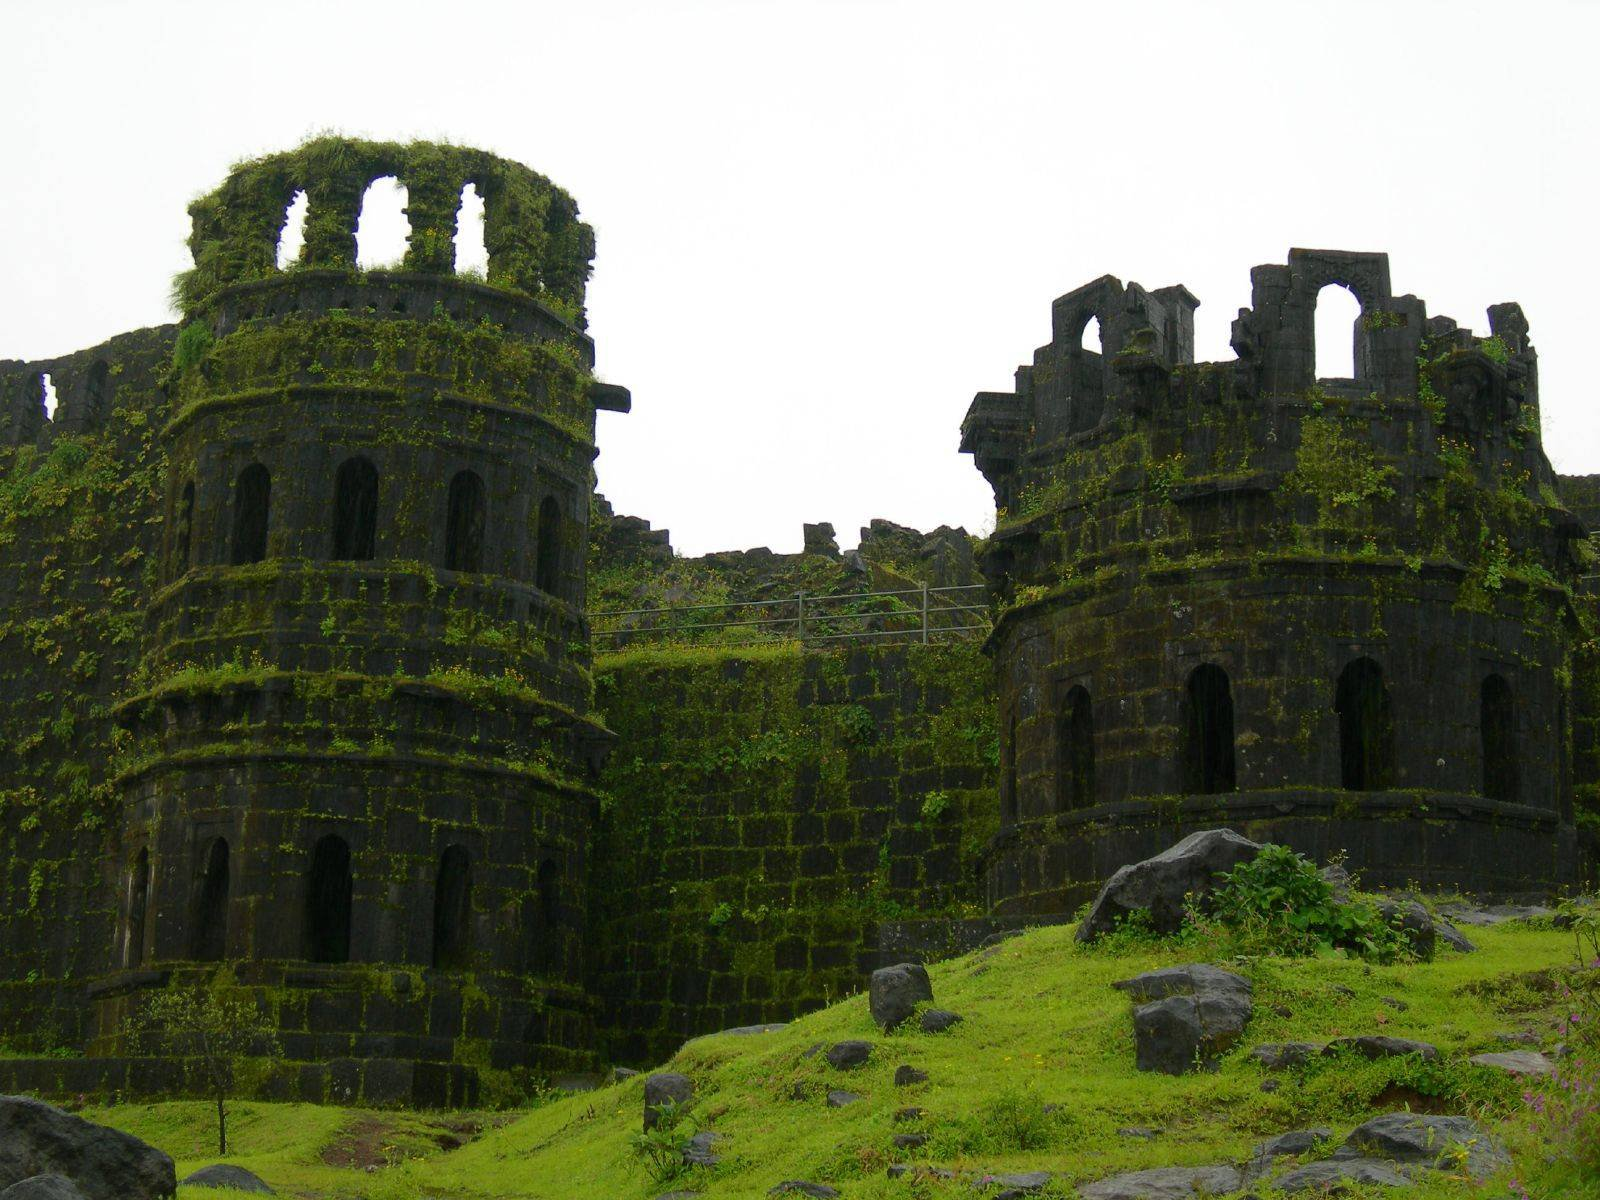 Raigad Fort : Stuff that legends are made up of